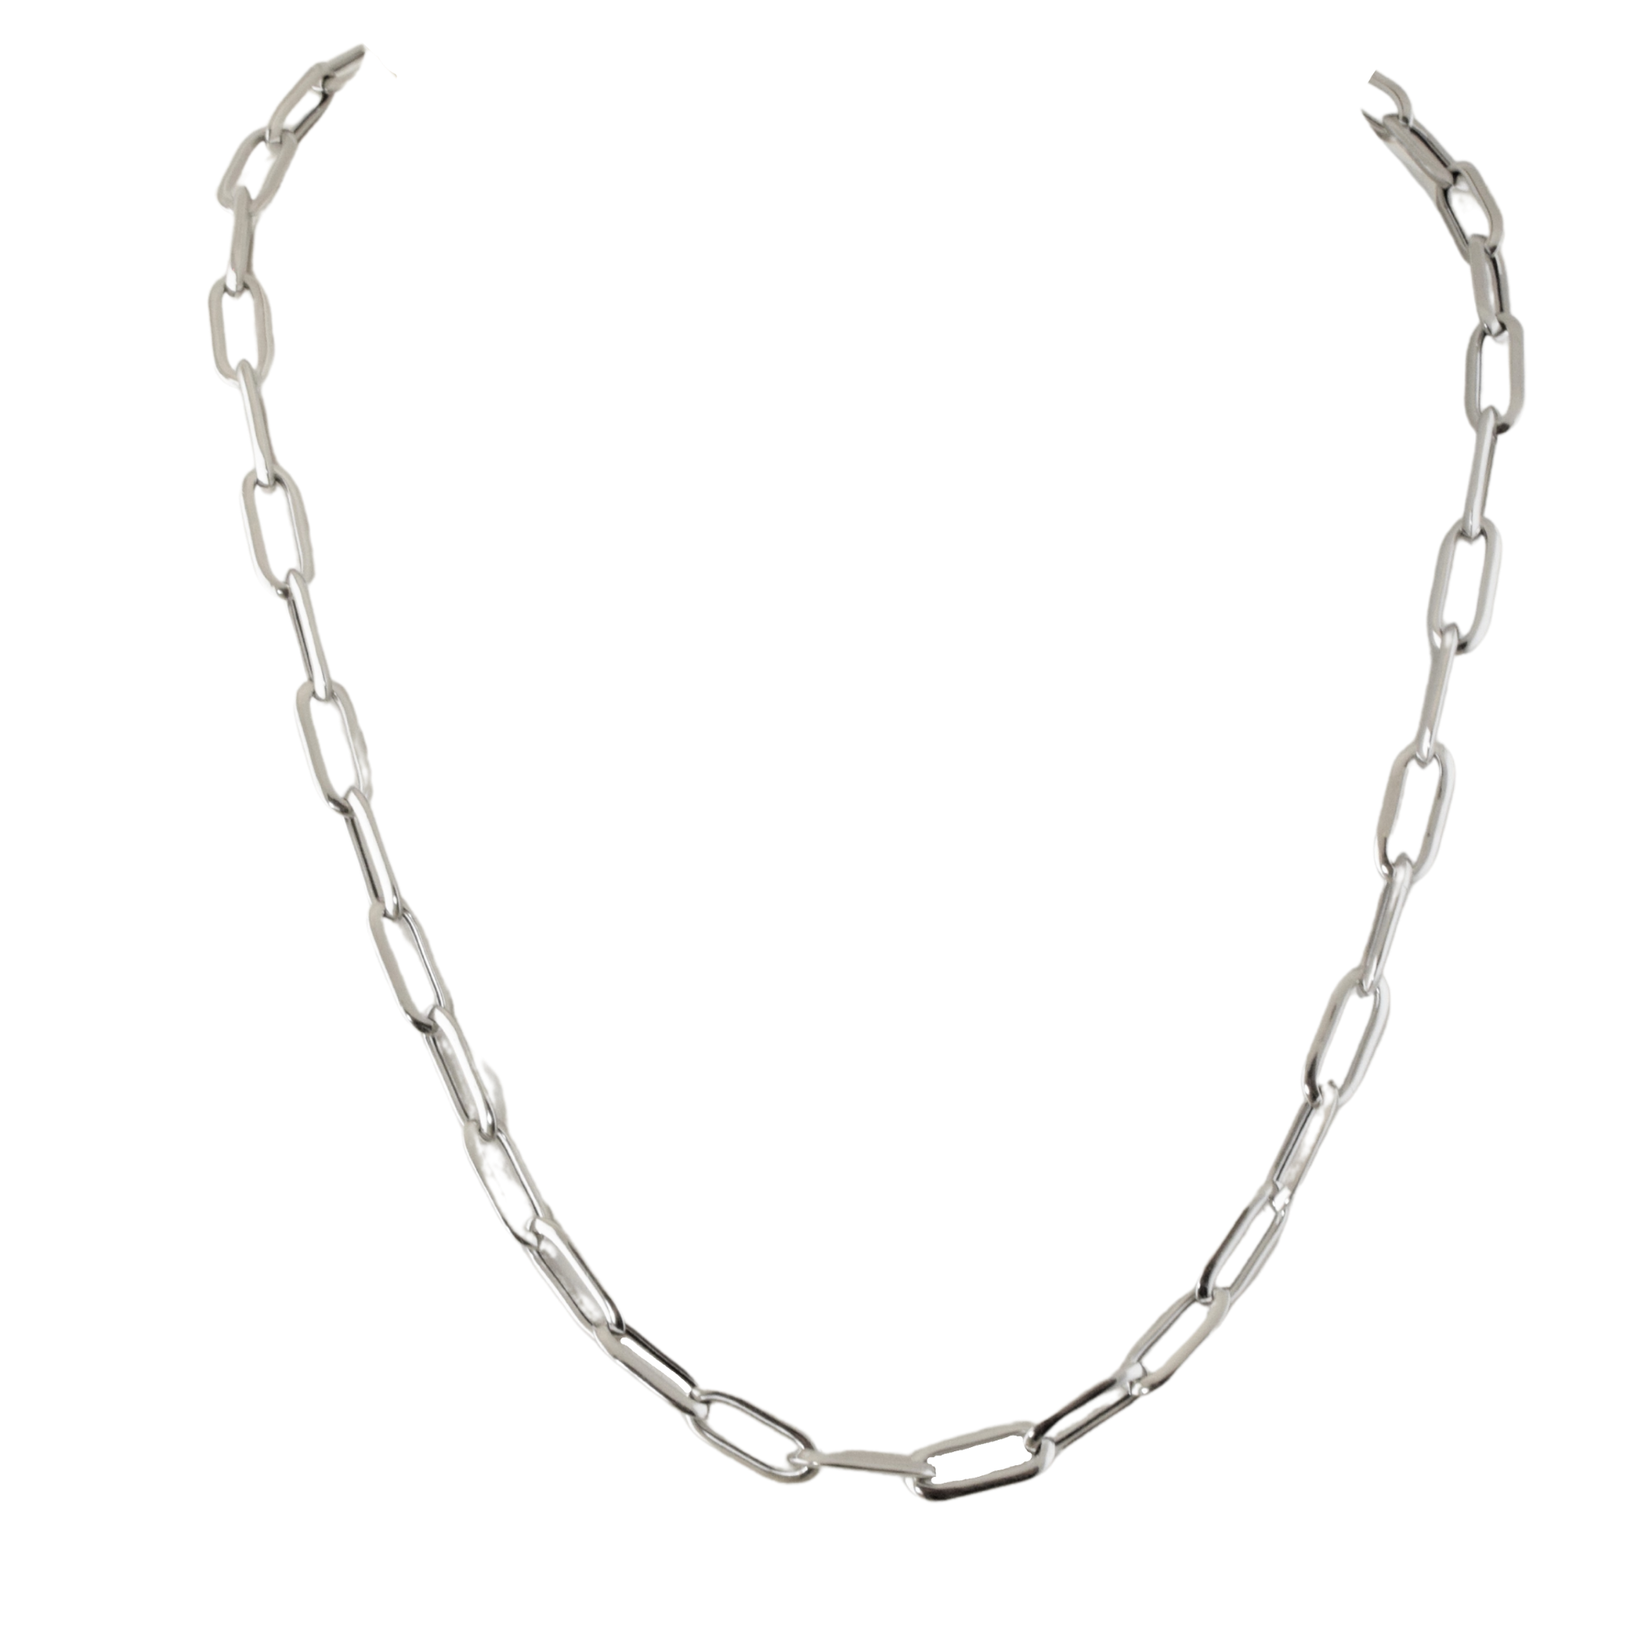 Sterling Silver Rounded Paperclip Chain 20 inches